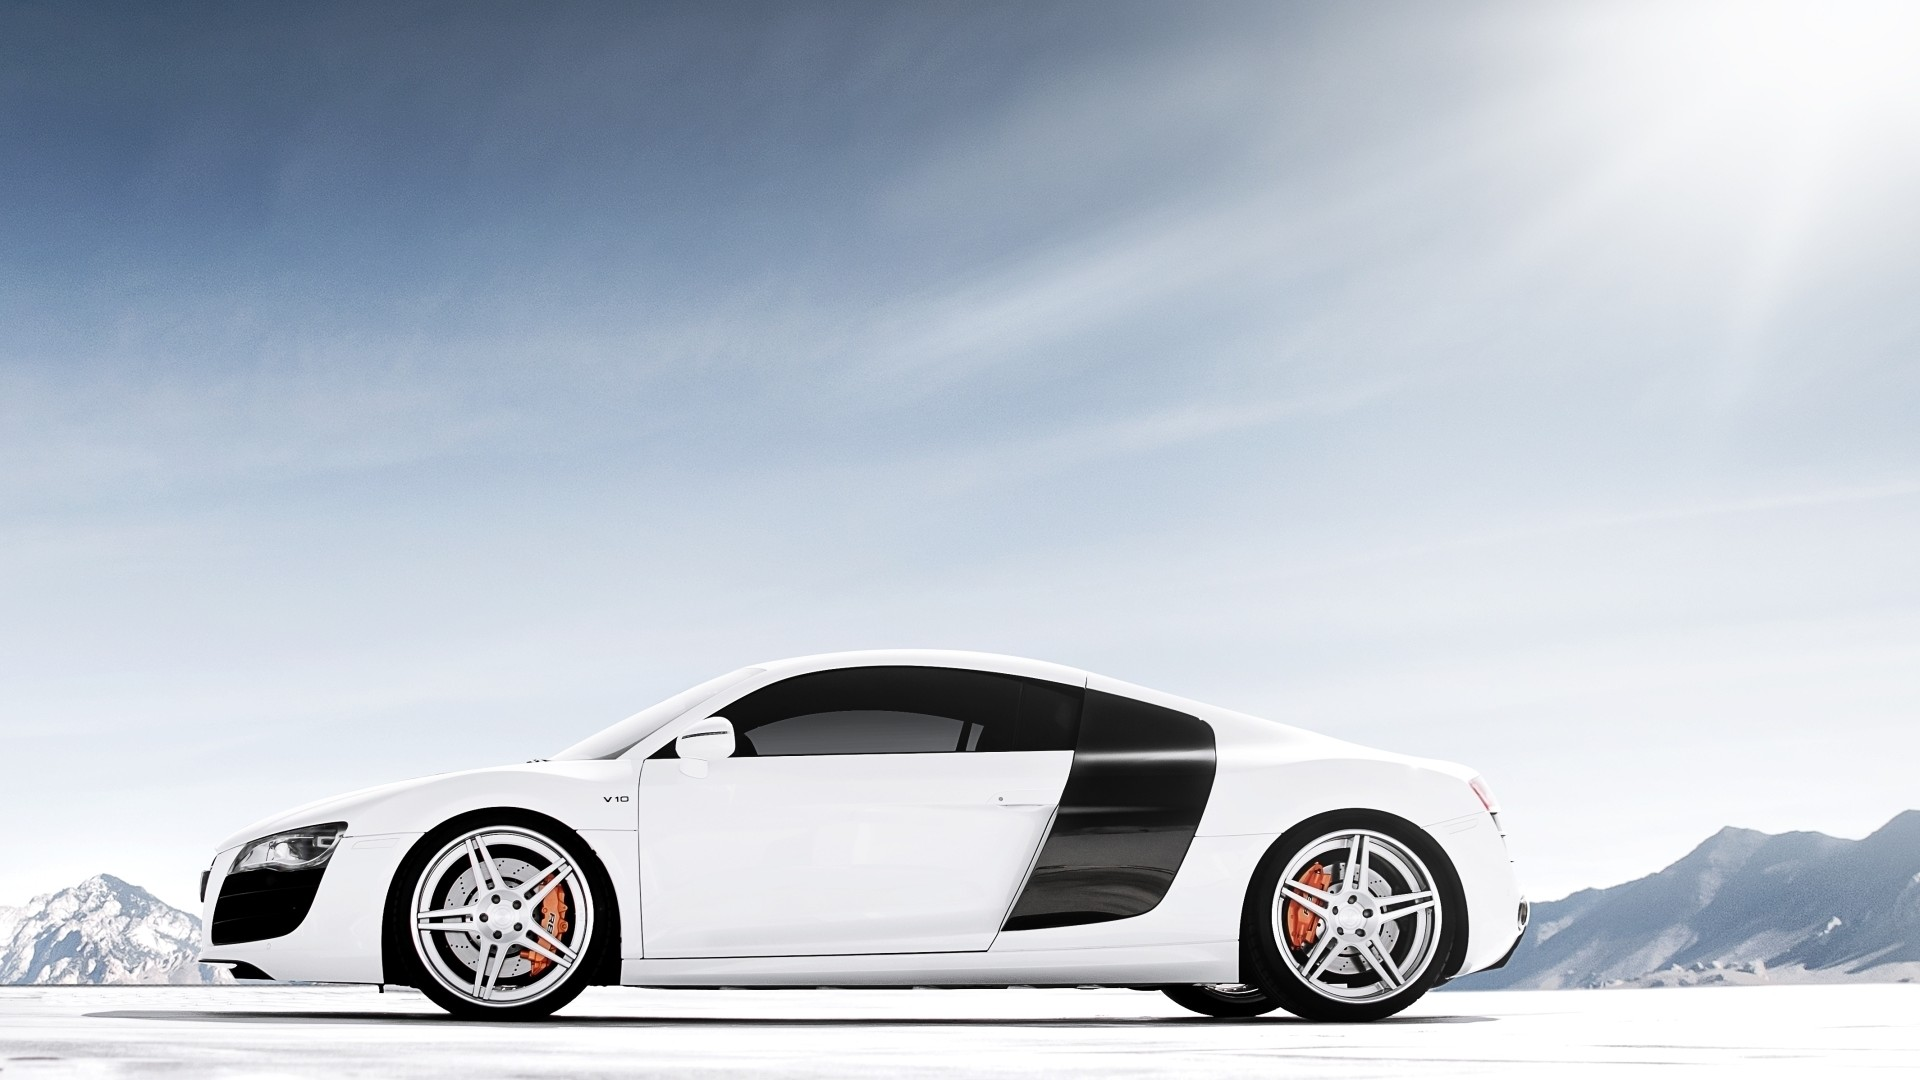 Audi HD Wallpapers For Mobile